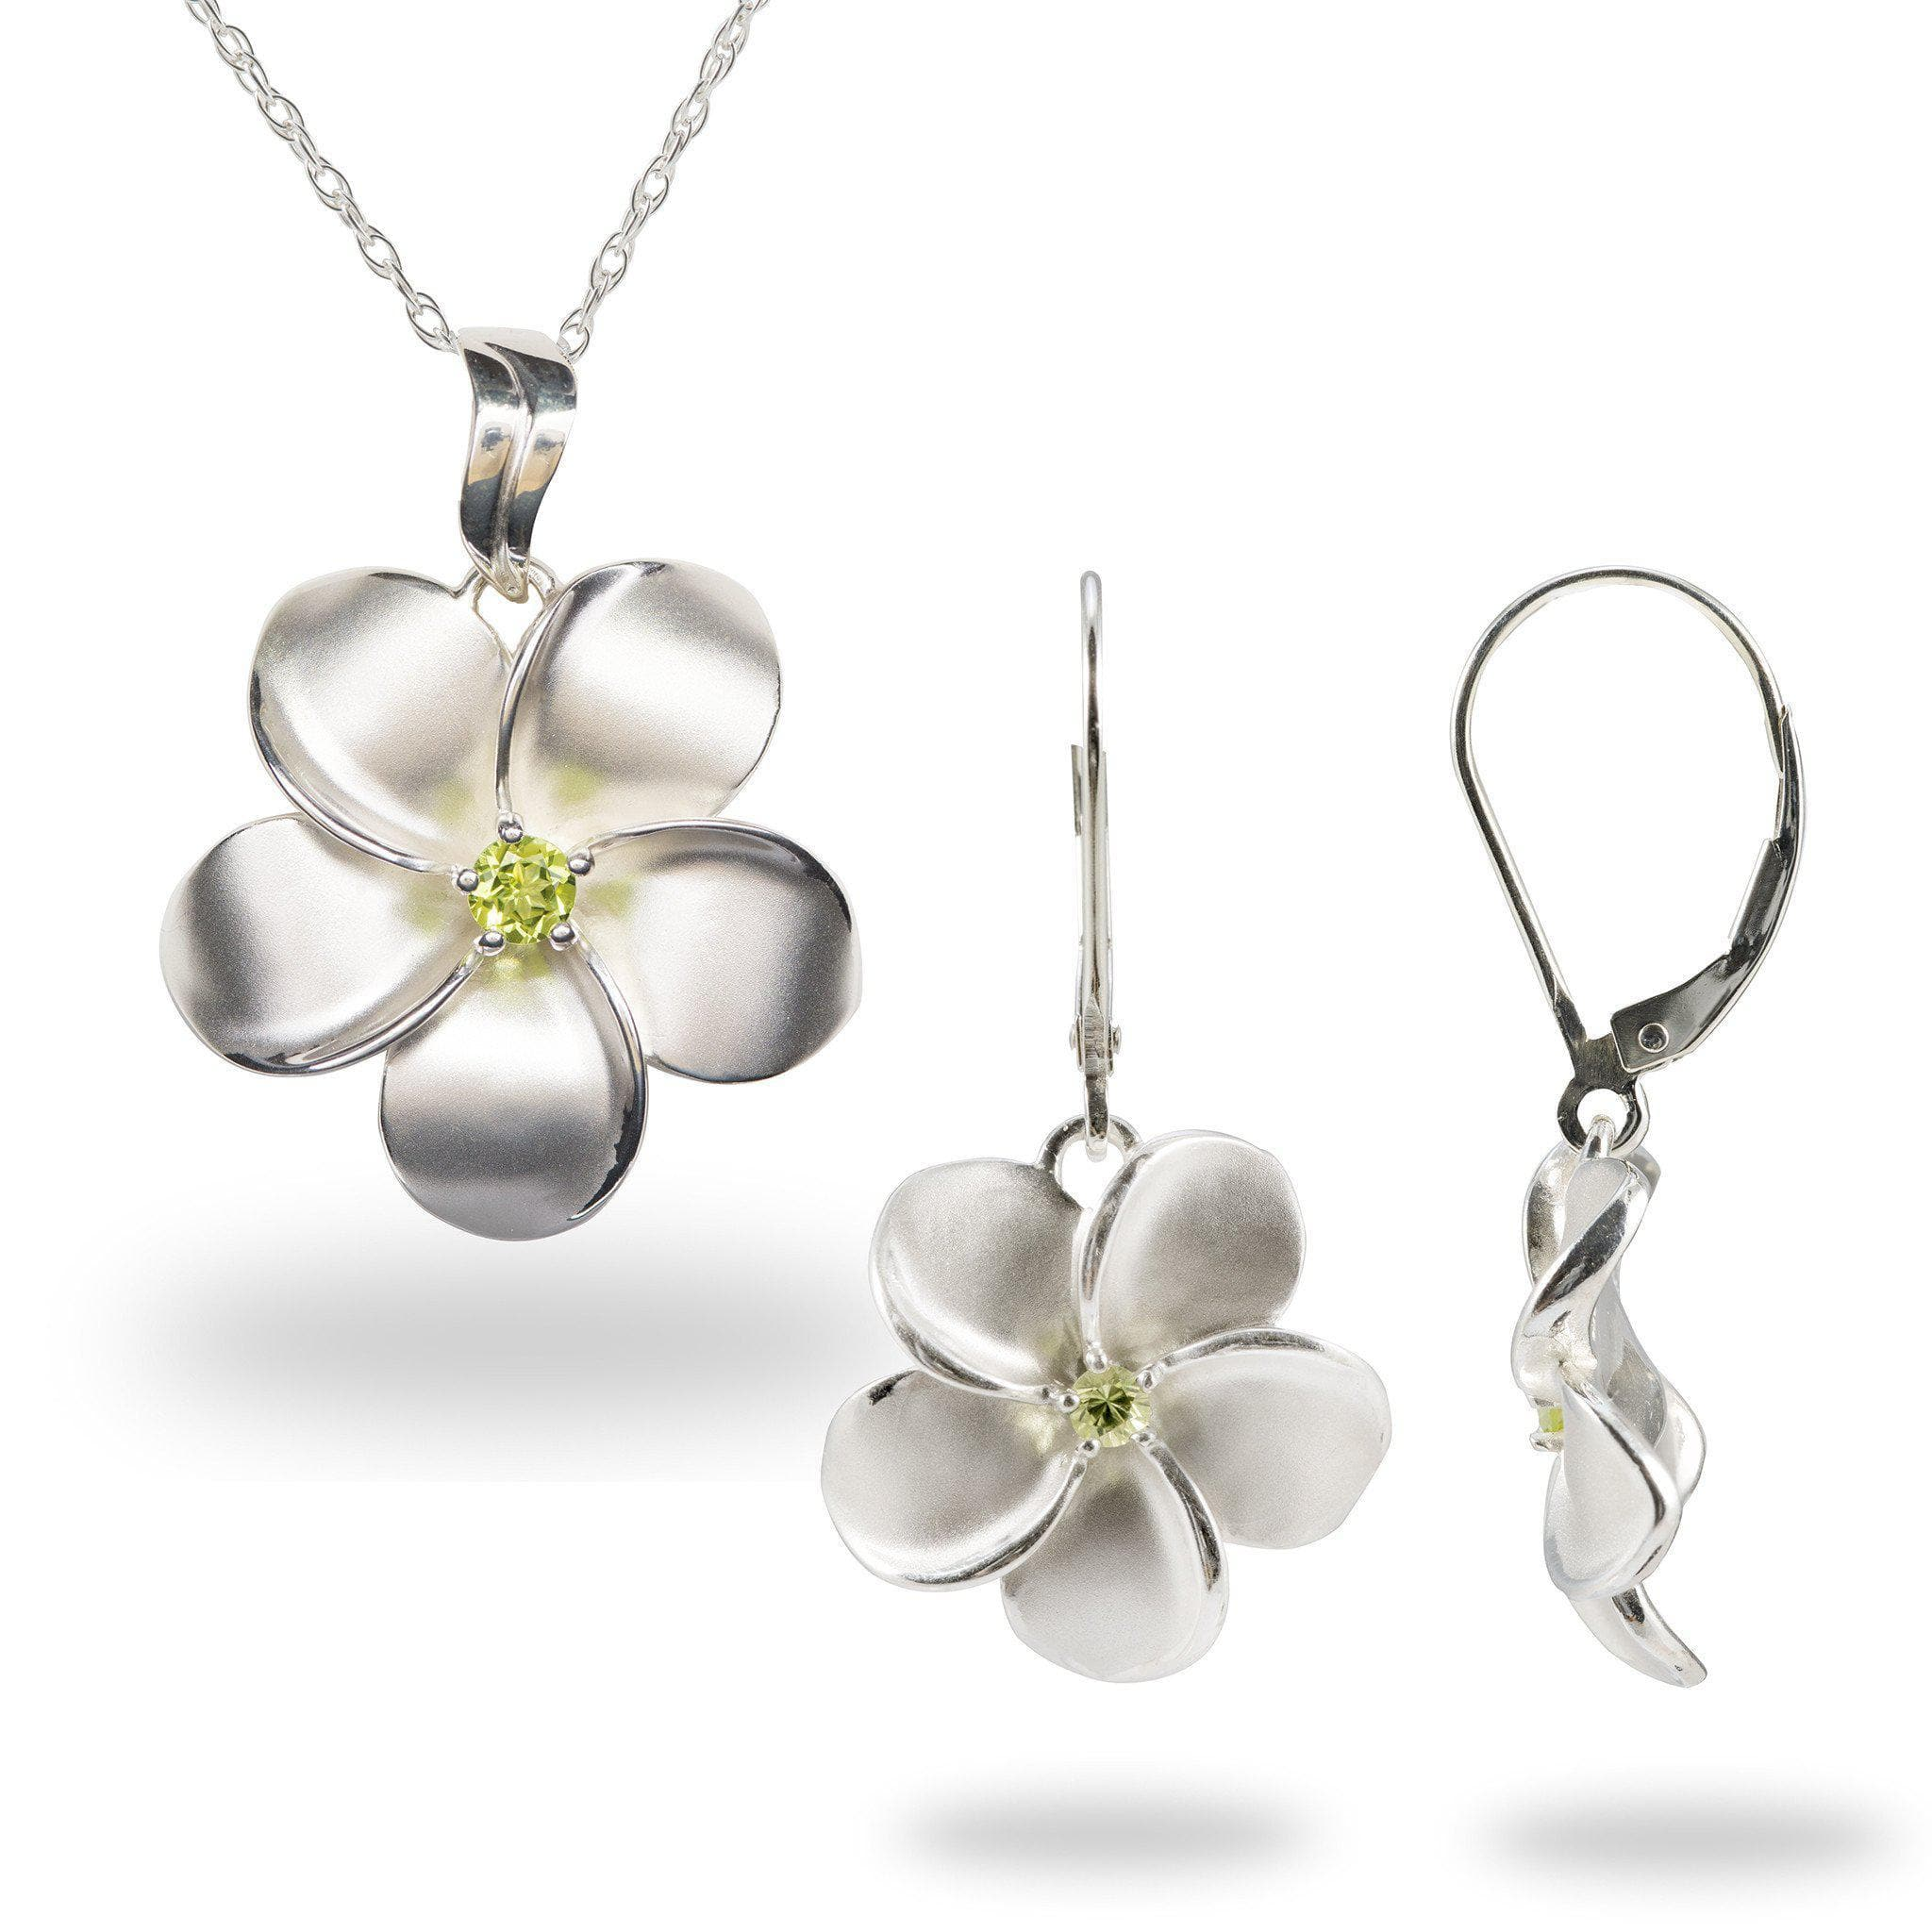 Plumeria Necklace & Earring Set With Peridot In Sterling Silver